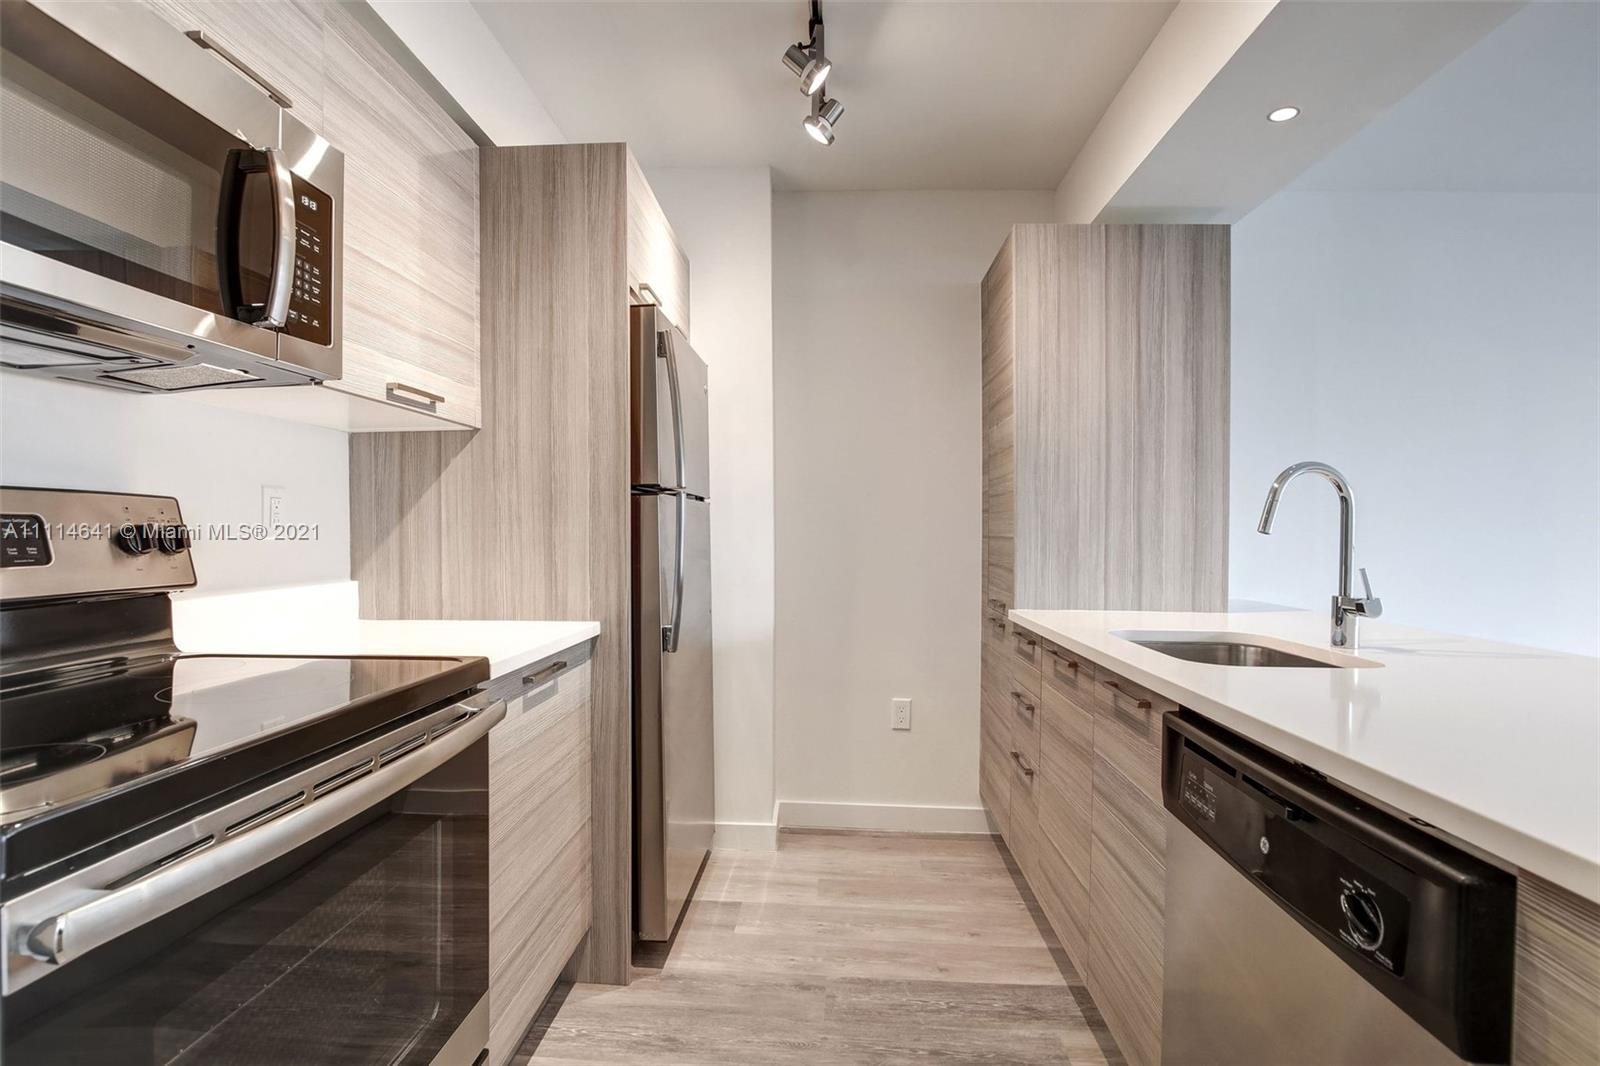 Condo For Rent at Bay Parc,Bay Parc Plaza